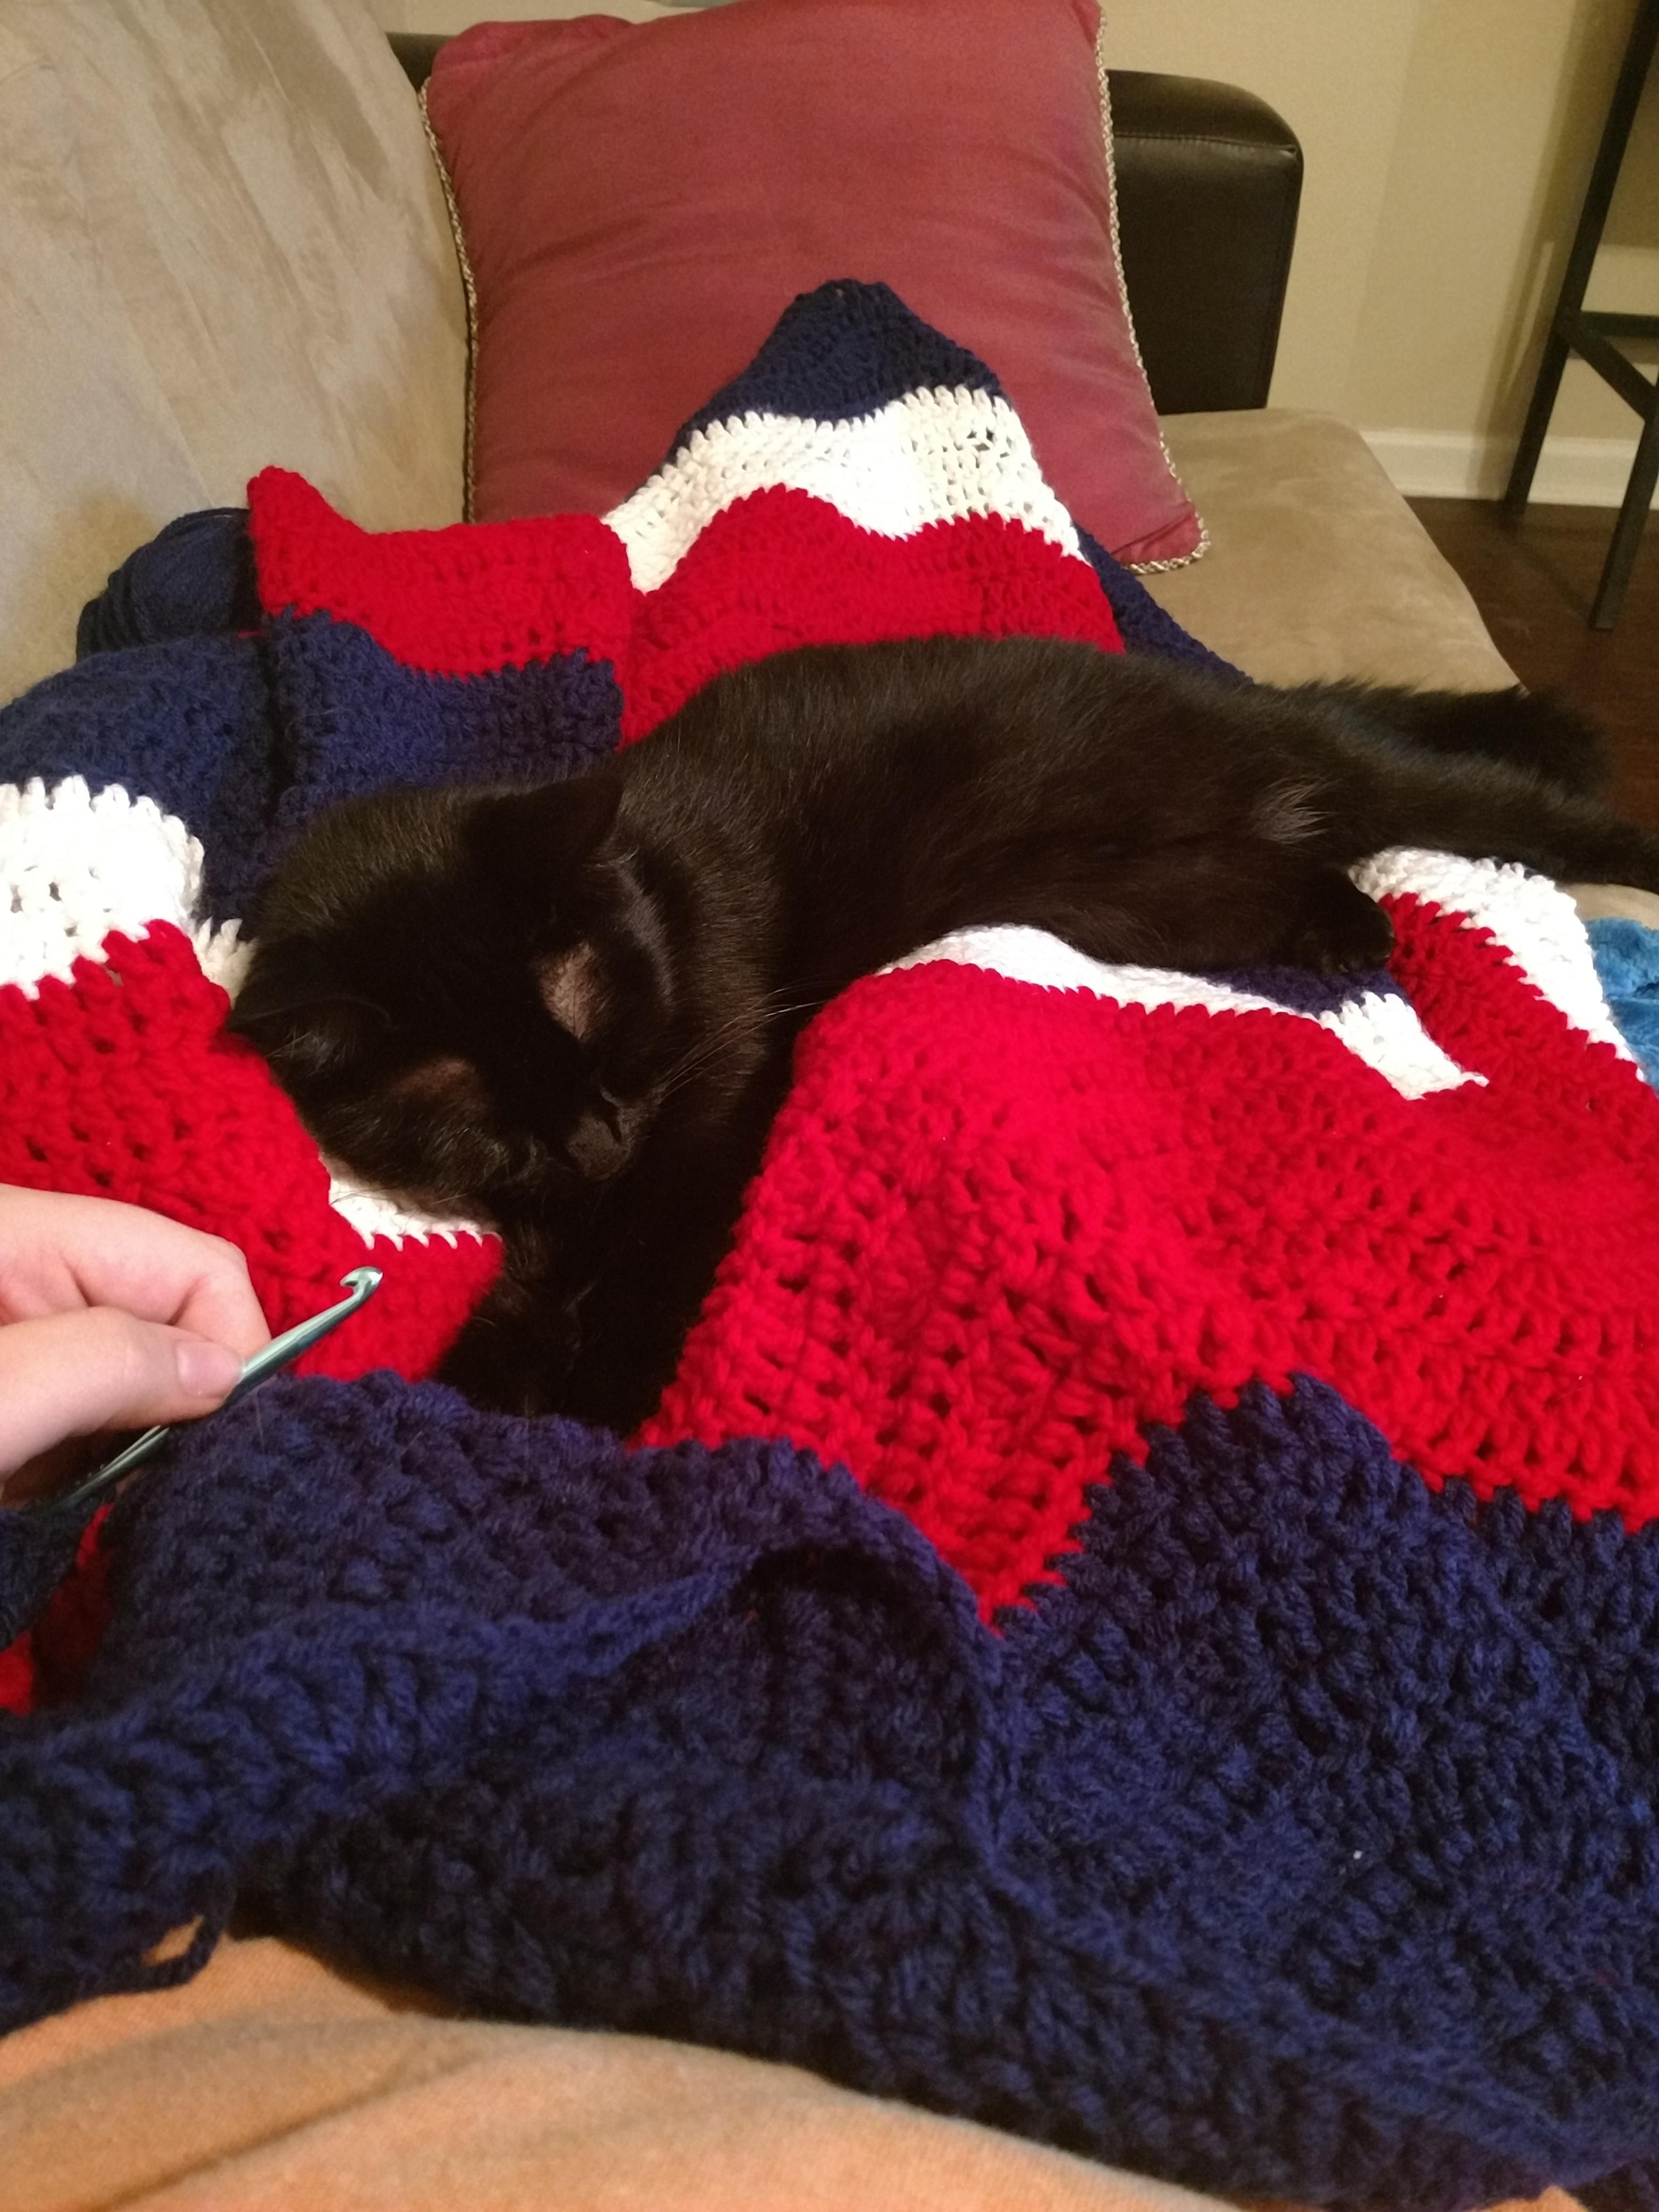 Sleepy Kitty Says Its Time To Stop Crocheting Https Ift Tt 2jynwol Cute Puppies Cats Animals Sleepy Cat Cat Day Black Cat